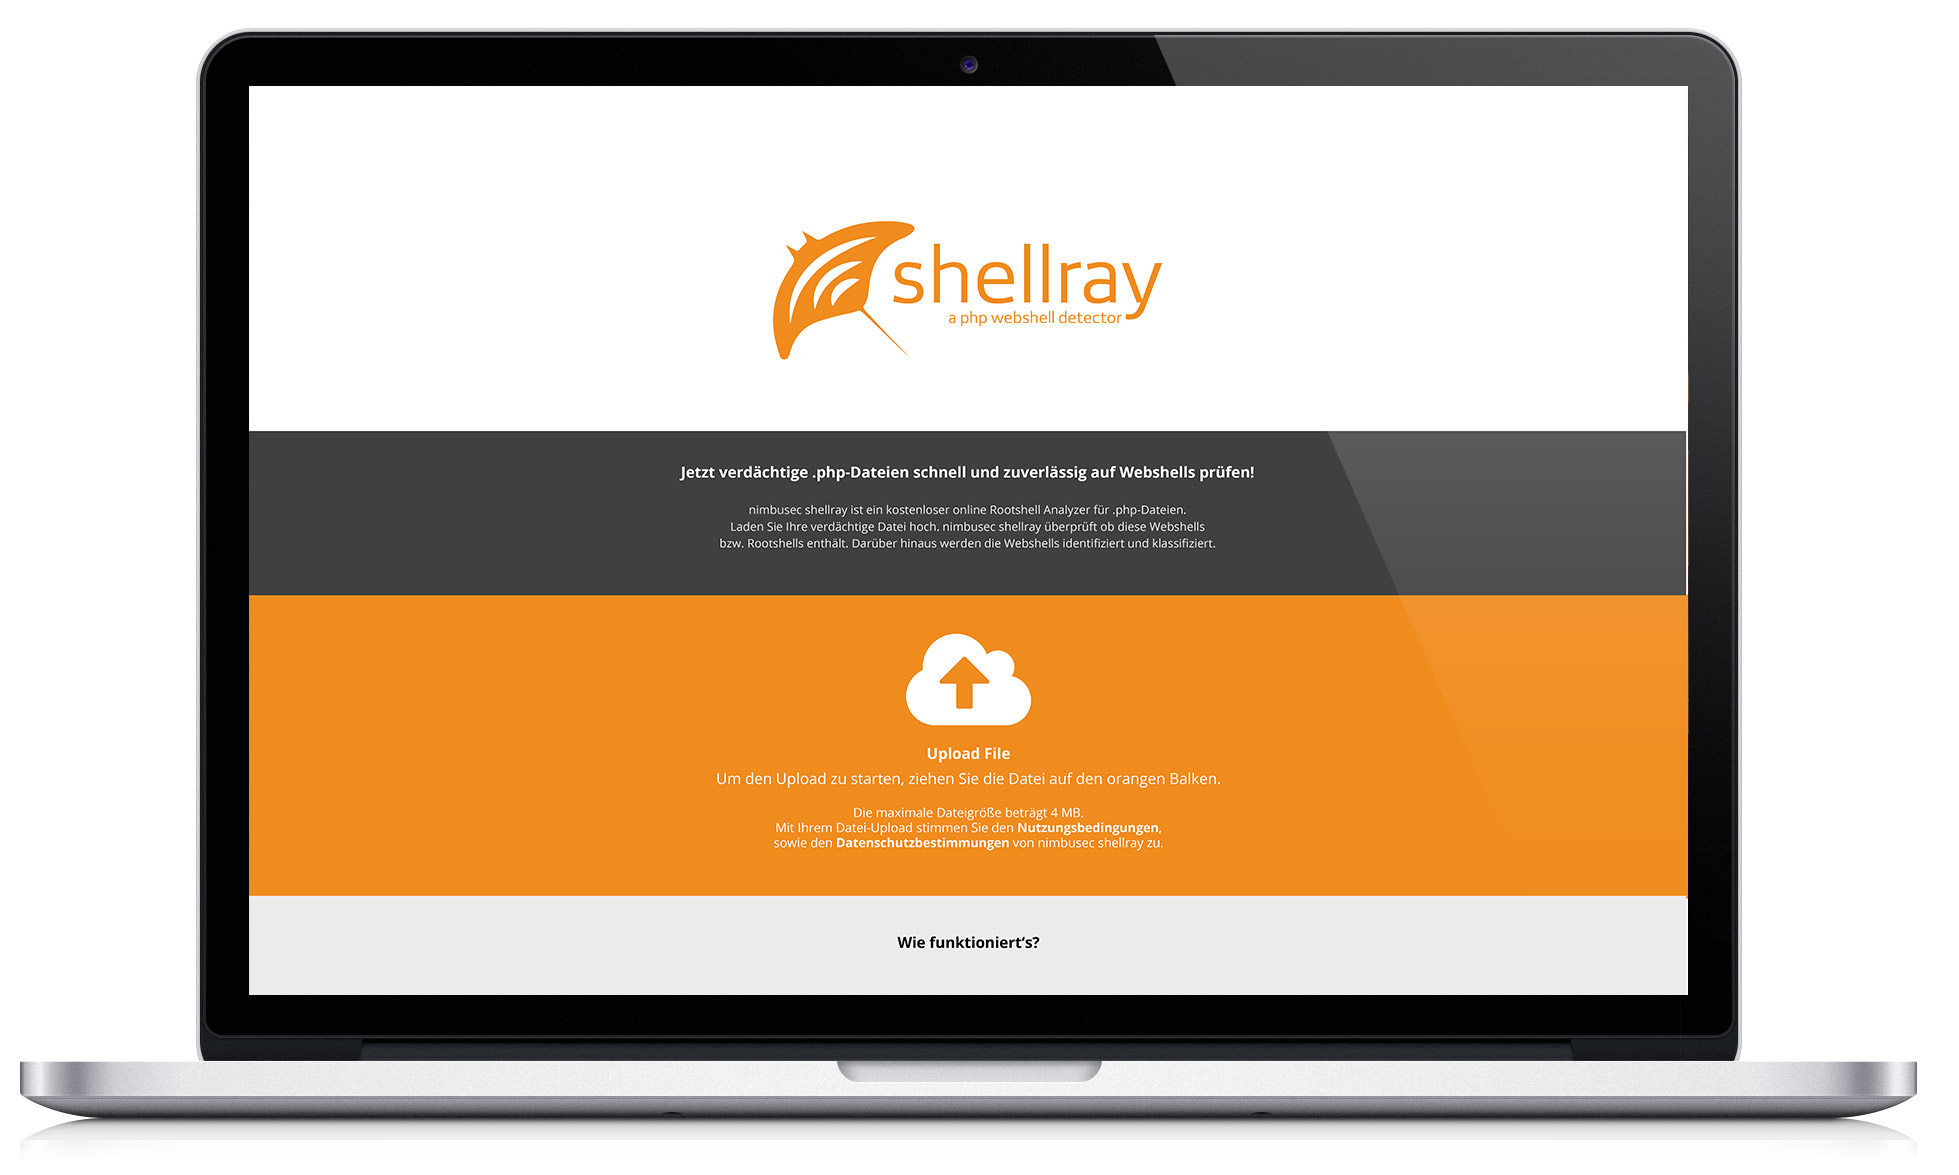 shellray